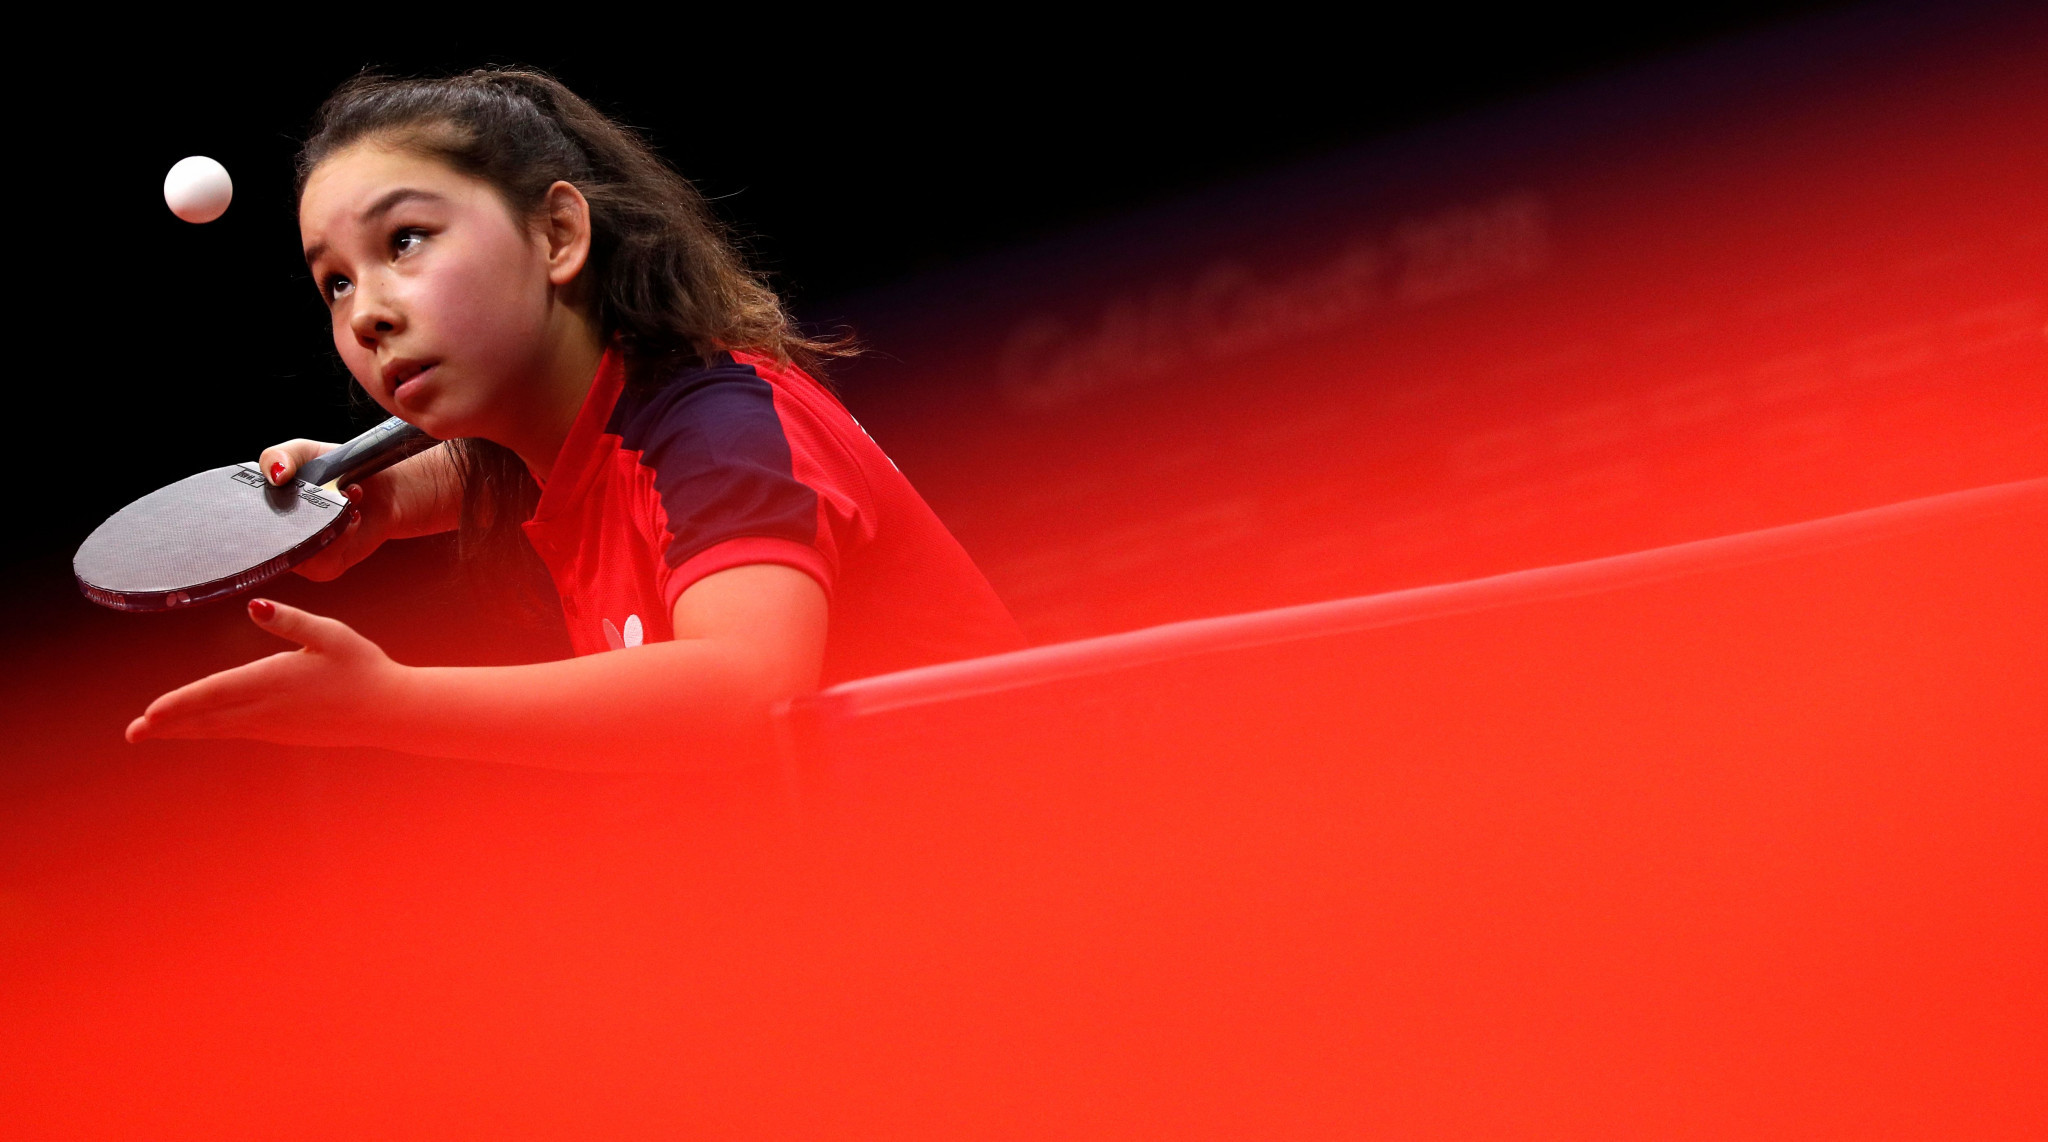 Hursey wins again on day two of European Table Tennis Championships